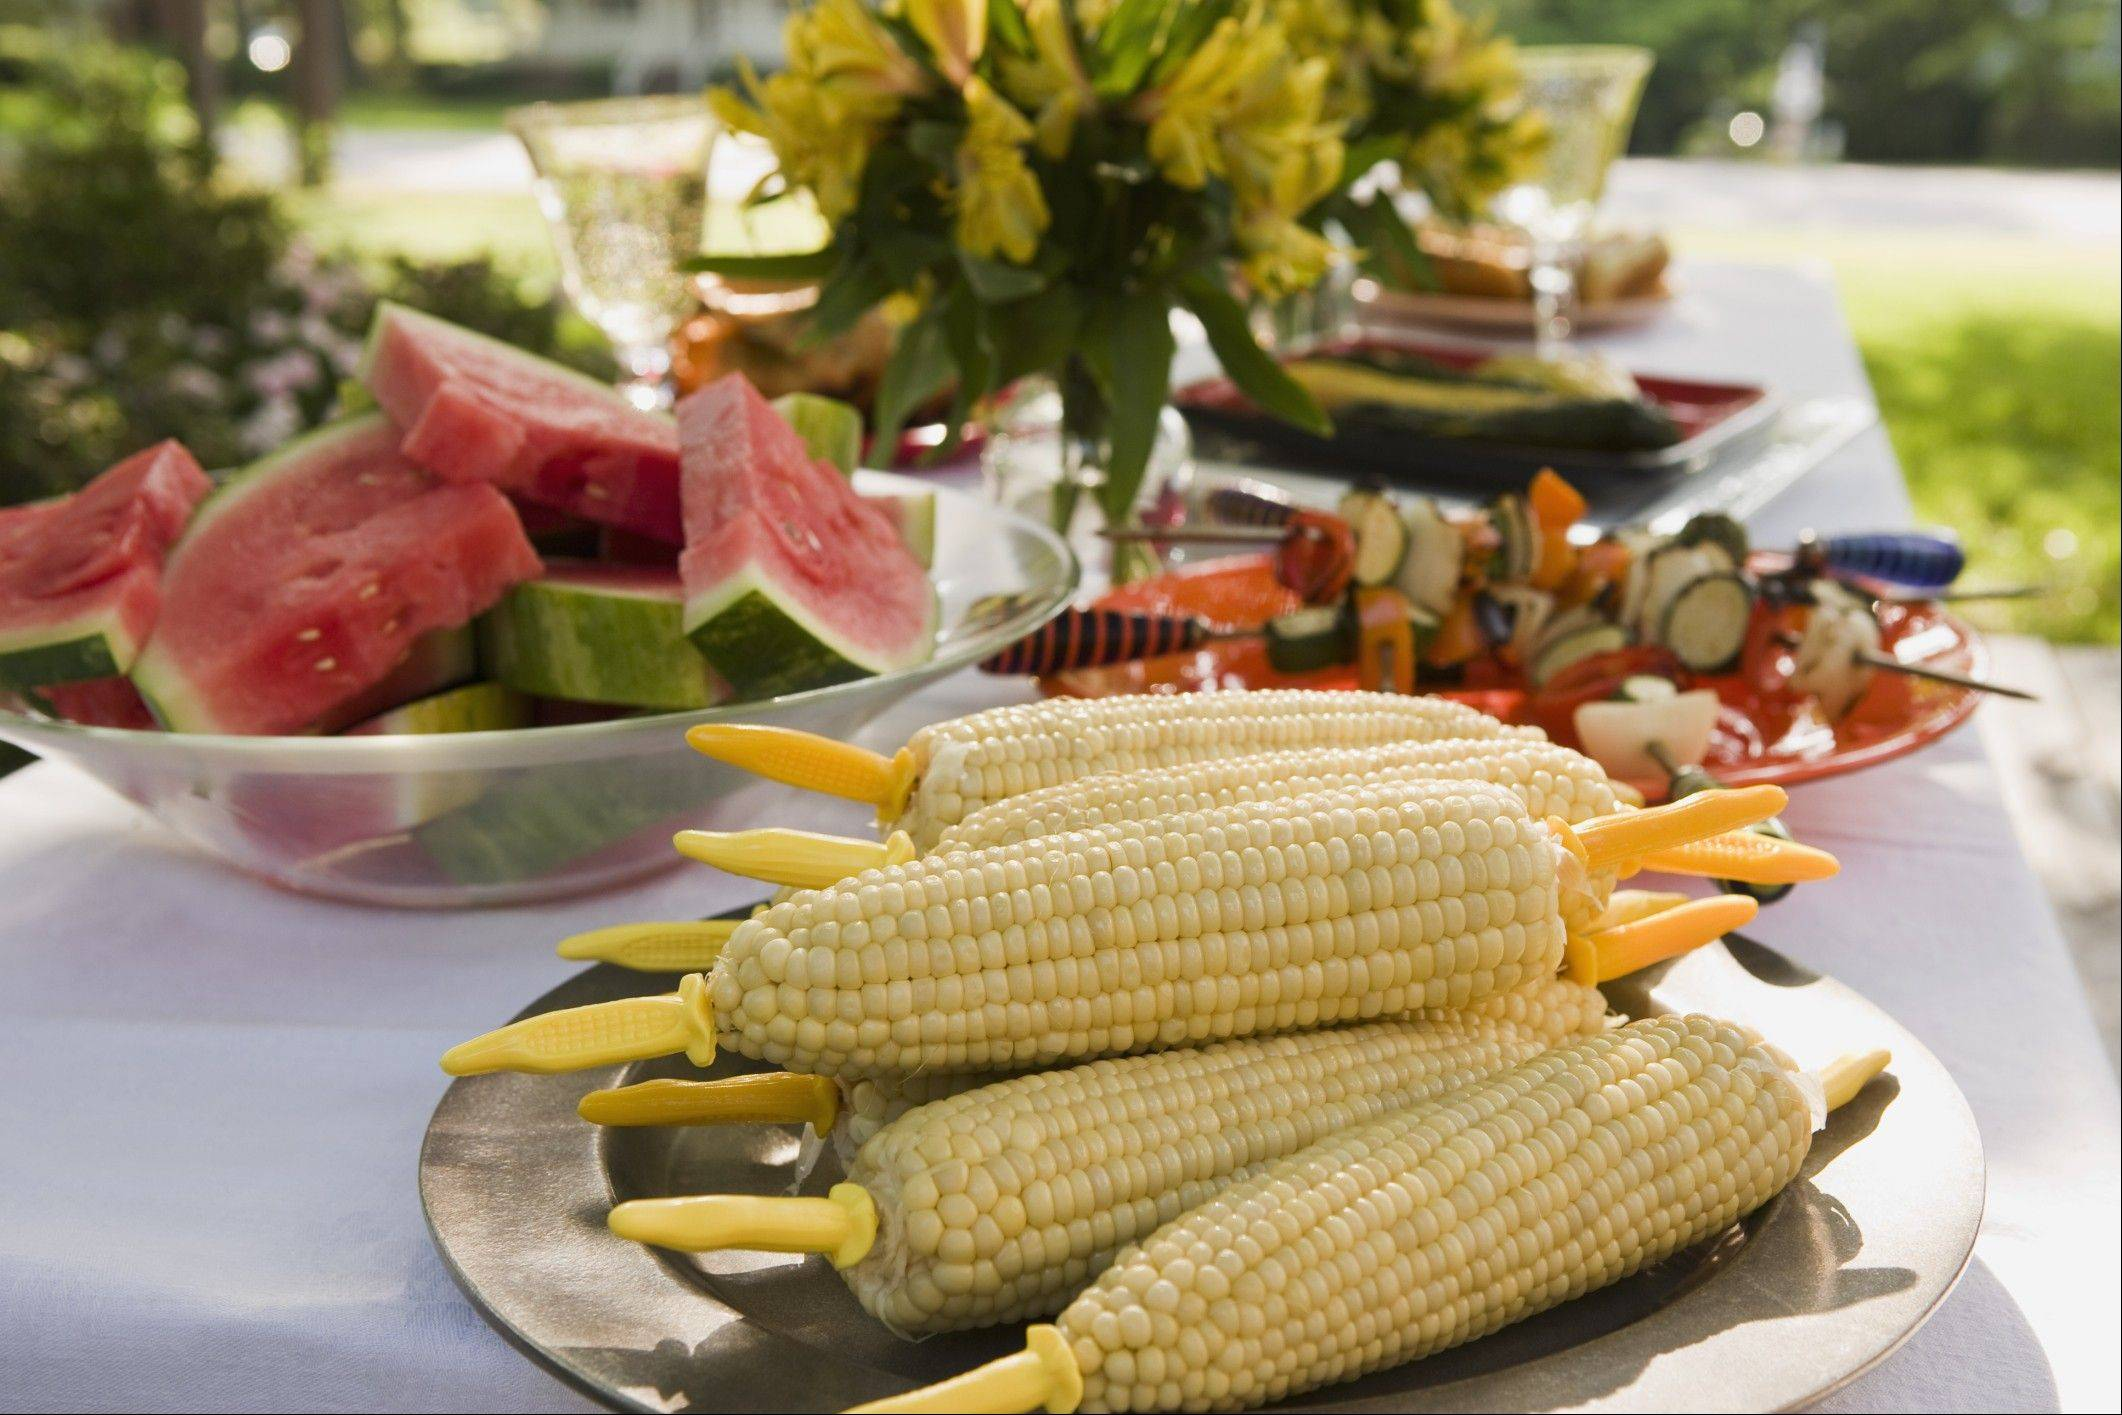 Opt for healthier options like fruit, veggies and lean meats when you attend parties this summer.